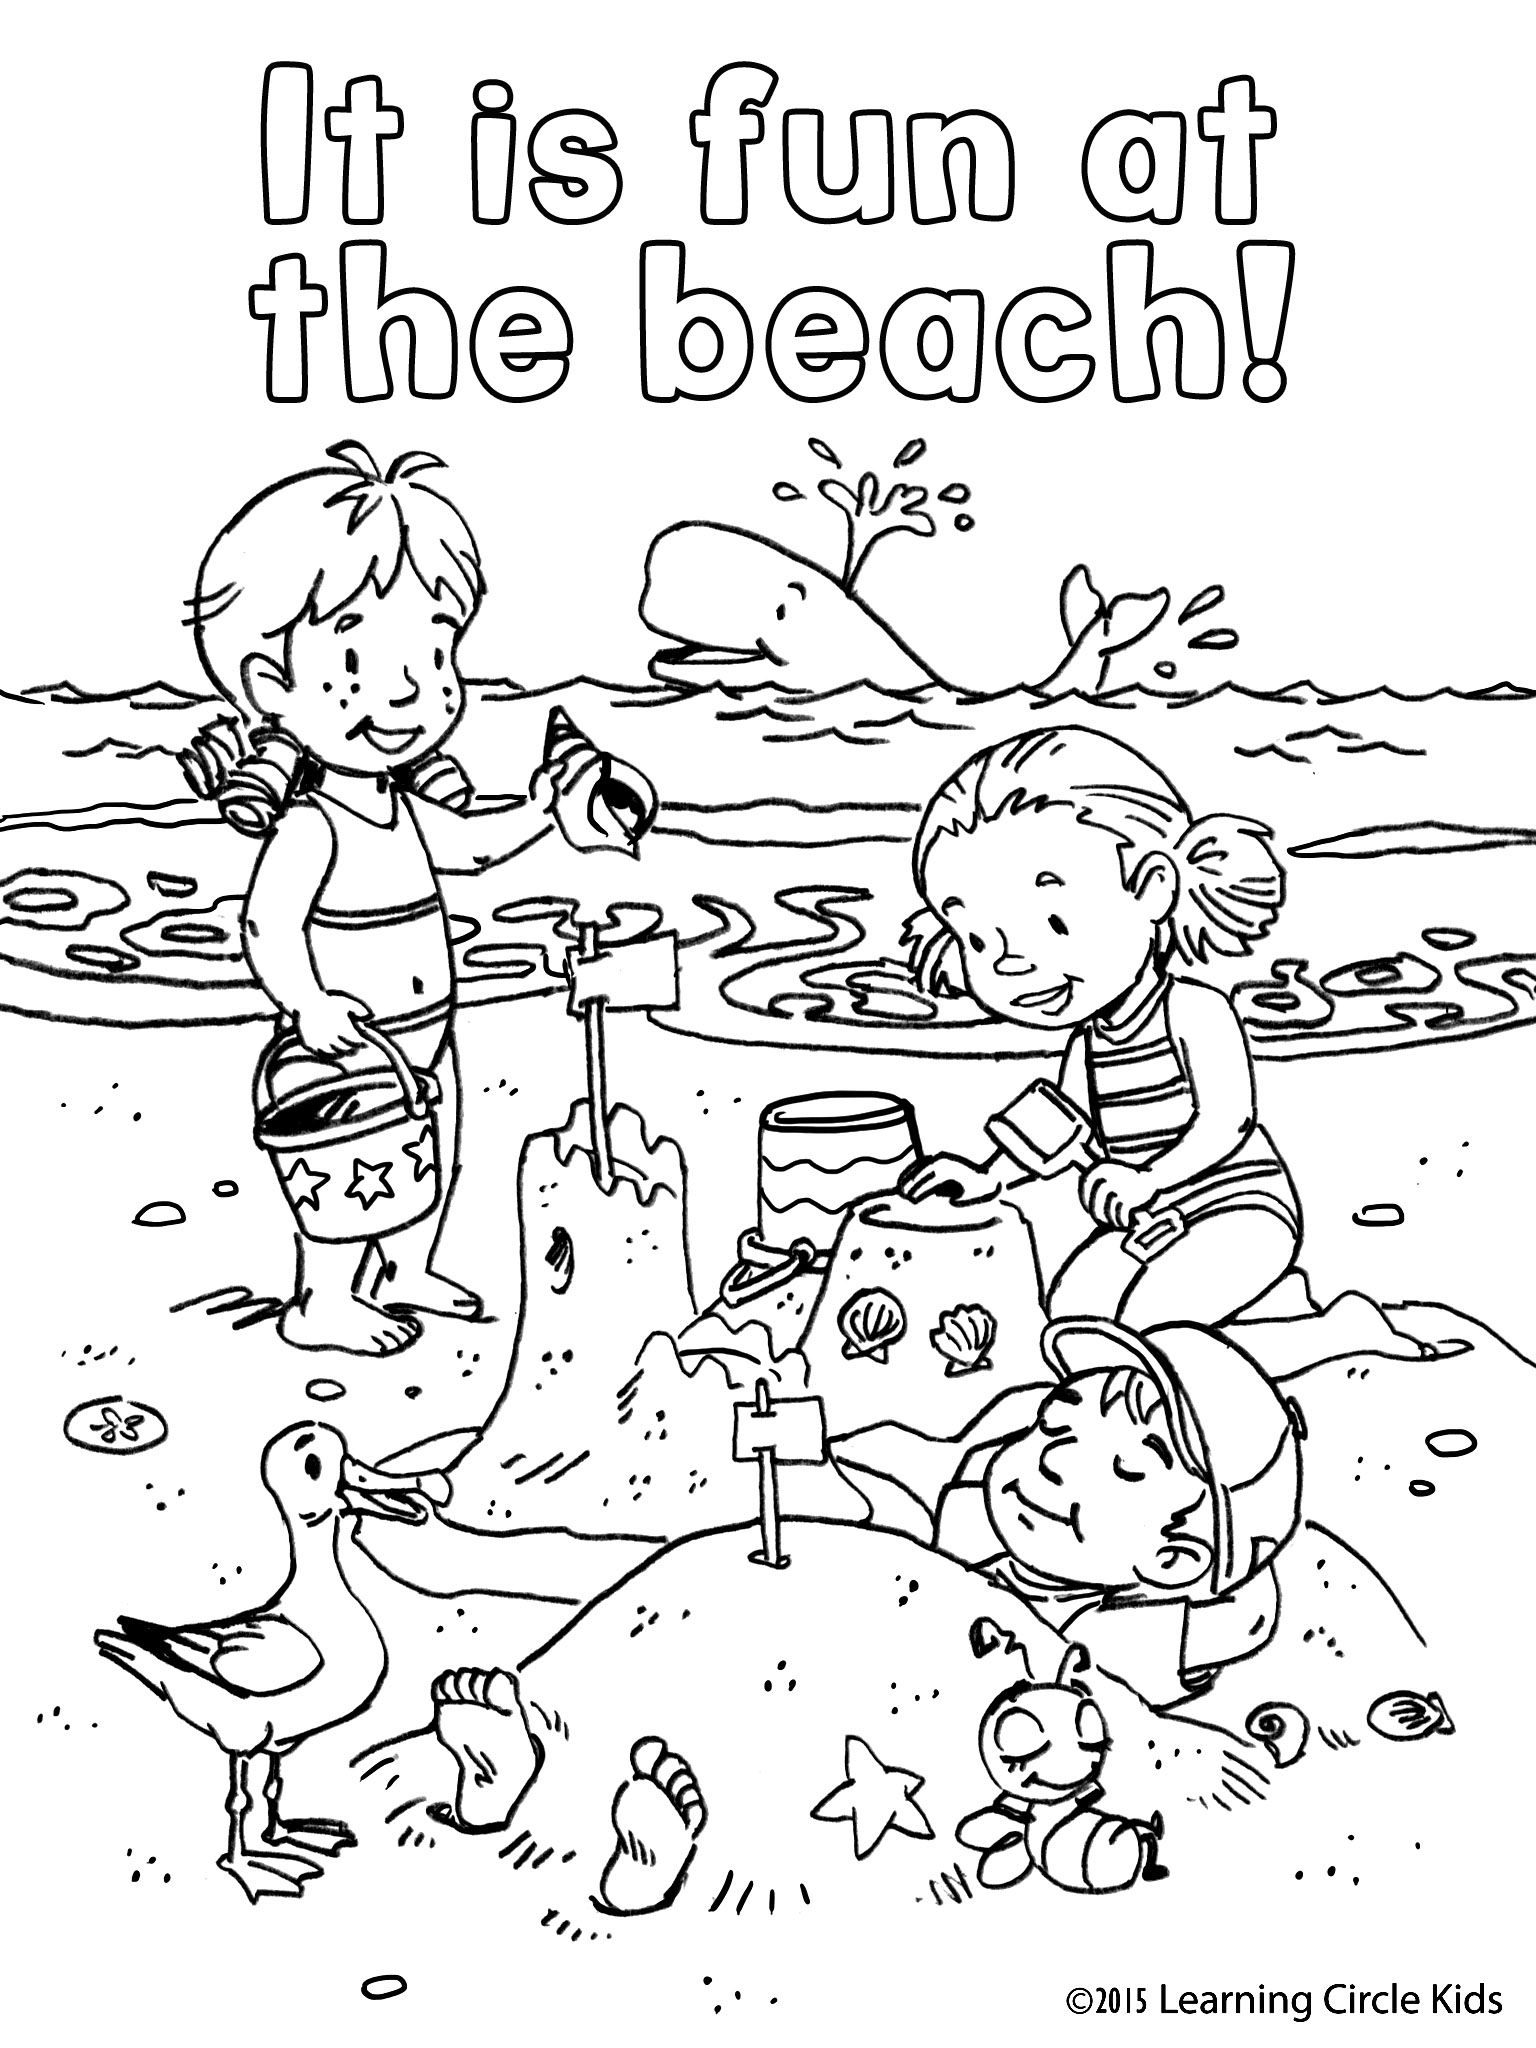 Free Coloring Page Children S Summer Fun At The Beach